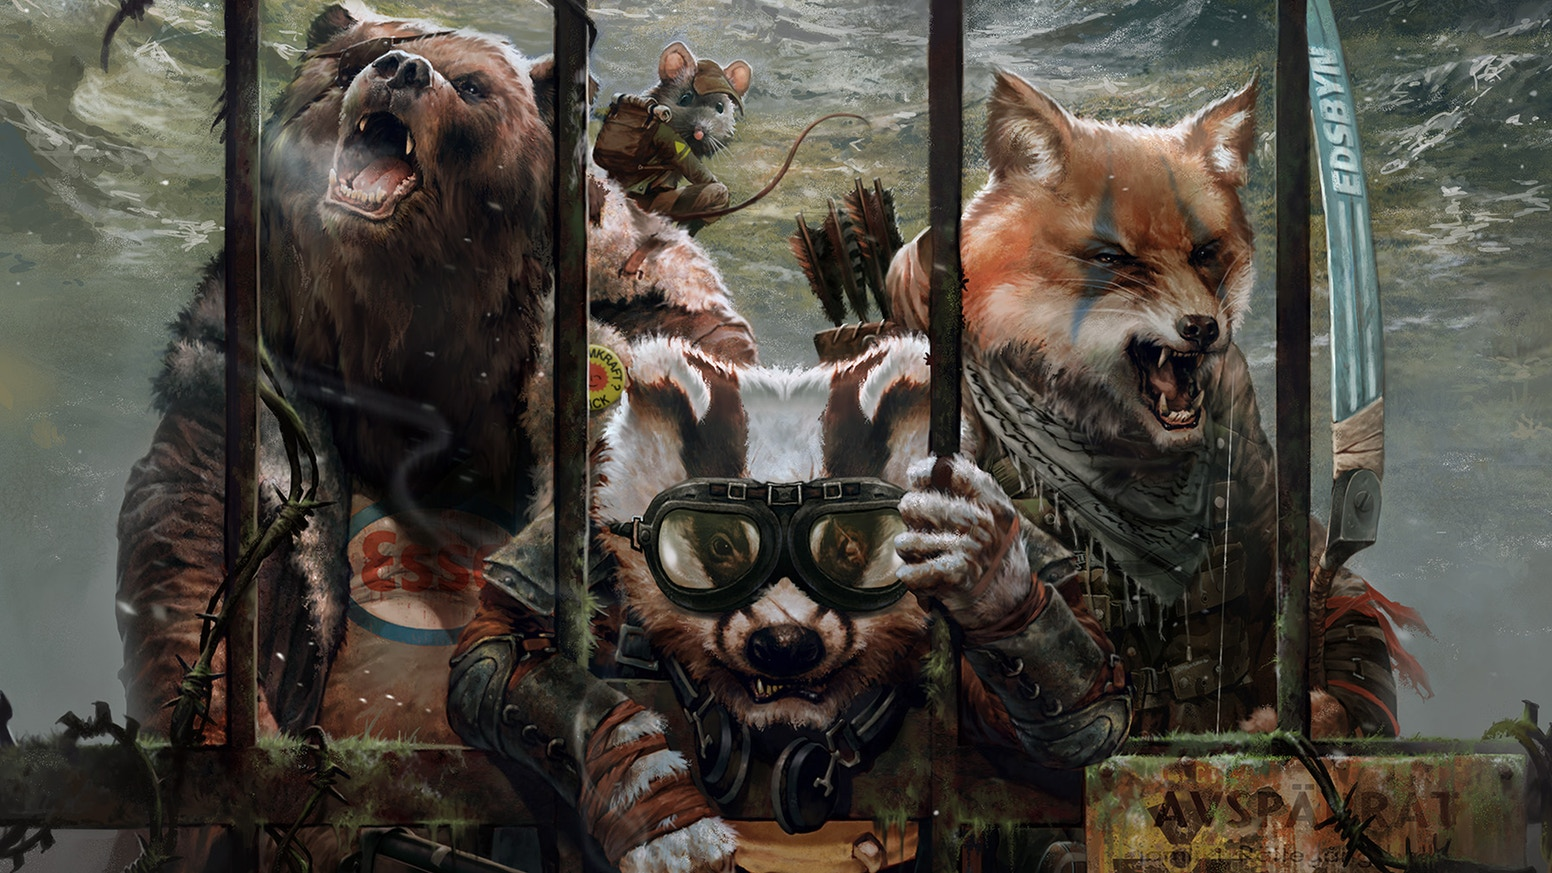 The tabletop lore behind Mutant Year Zero's gun-toting animals and